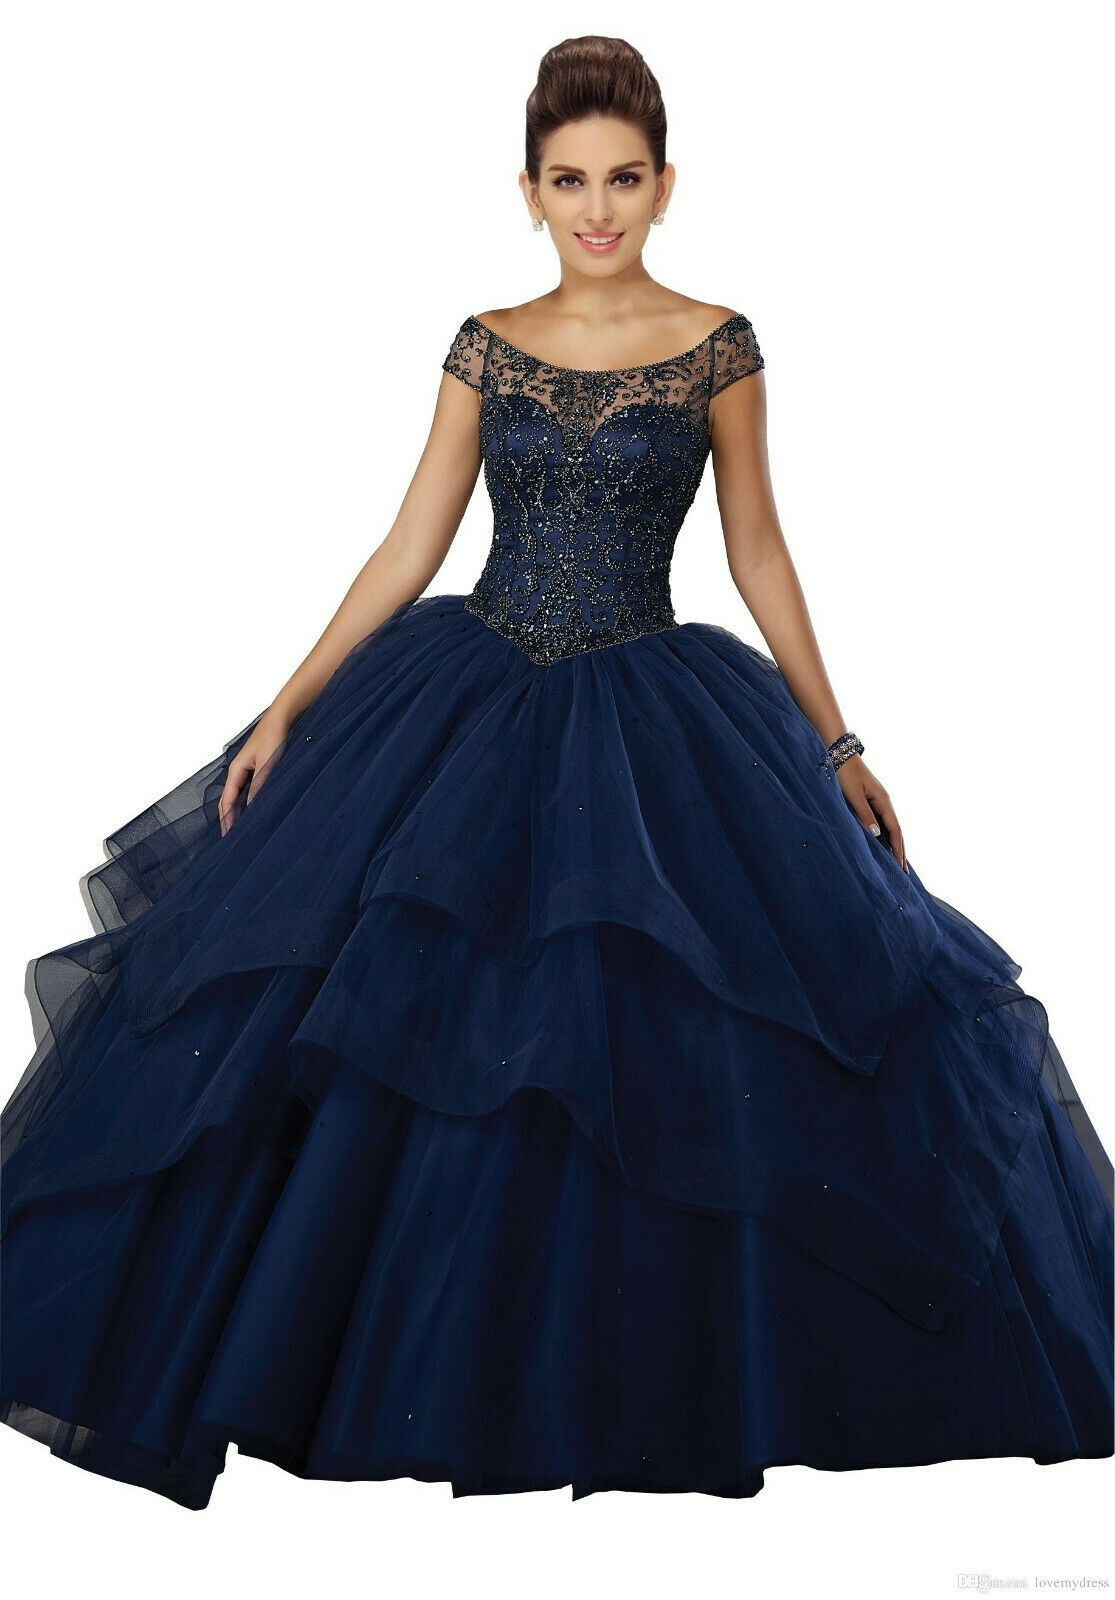 Luxury Sweetheart Quinceanera Dresses For 15 Party Prom Gowns Plus Size